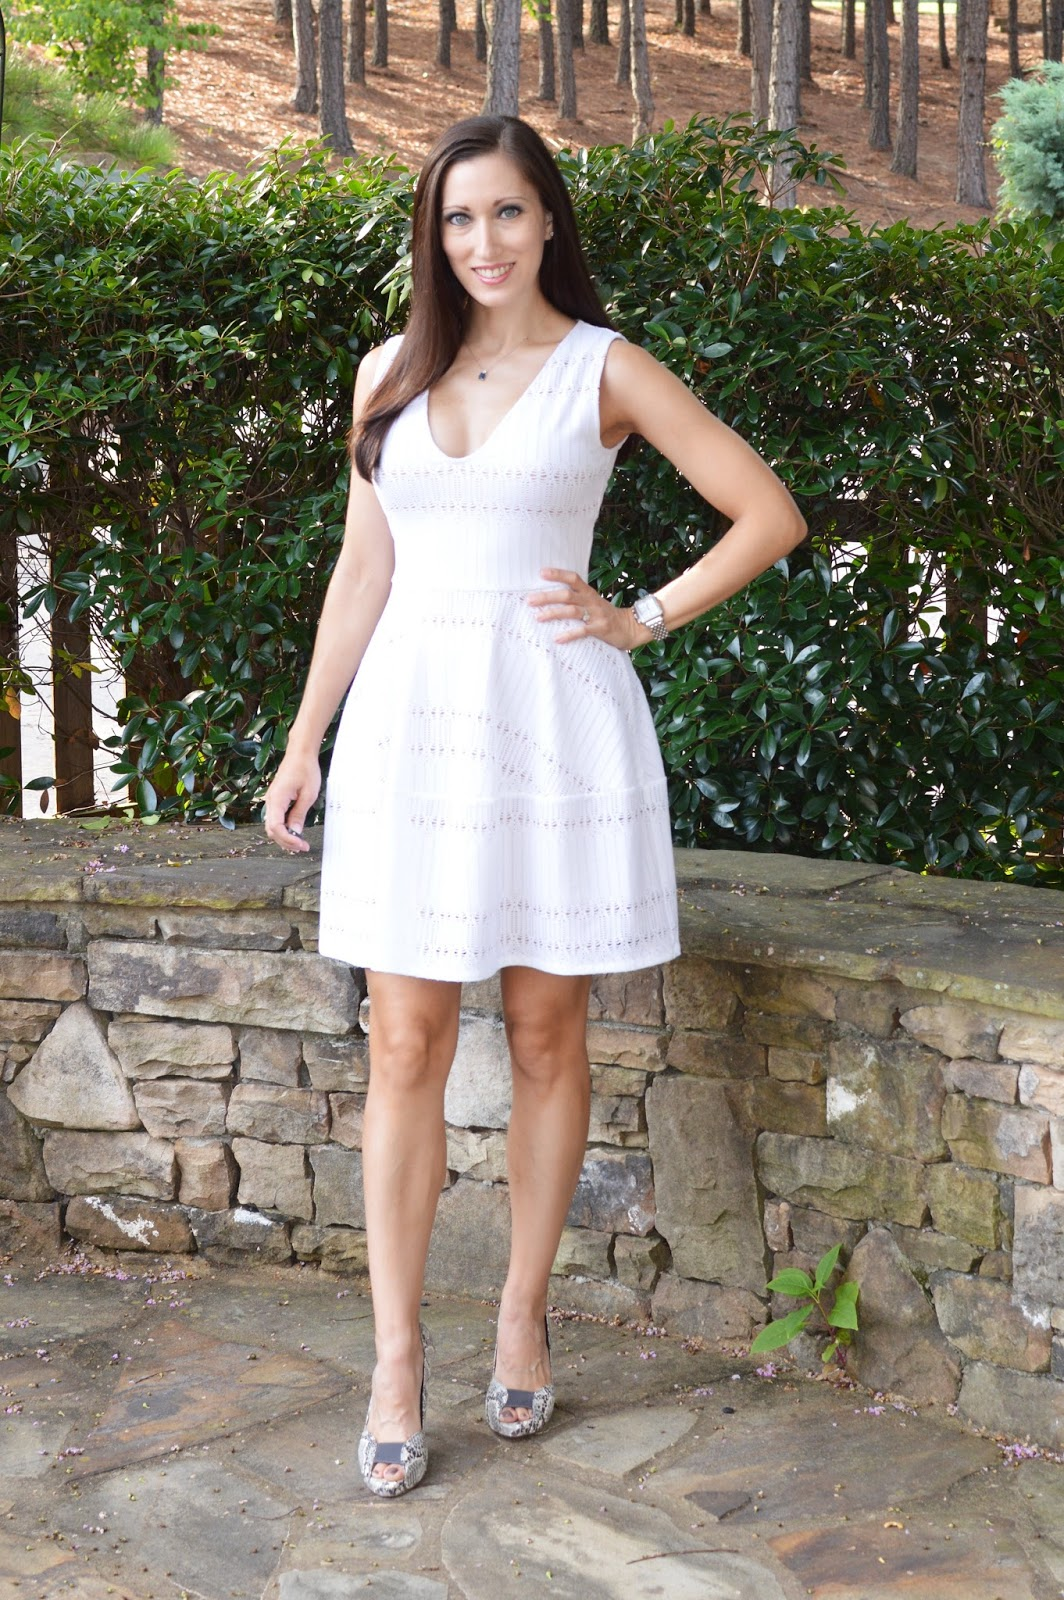 a25a77faff2 Everyday Fashionista - Atlanta Blogger  Doily of a Dress